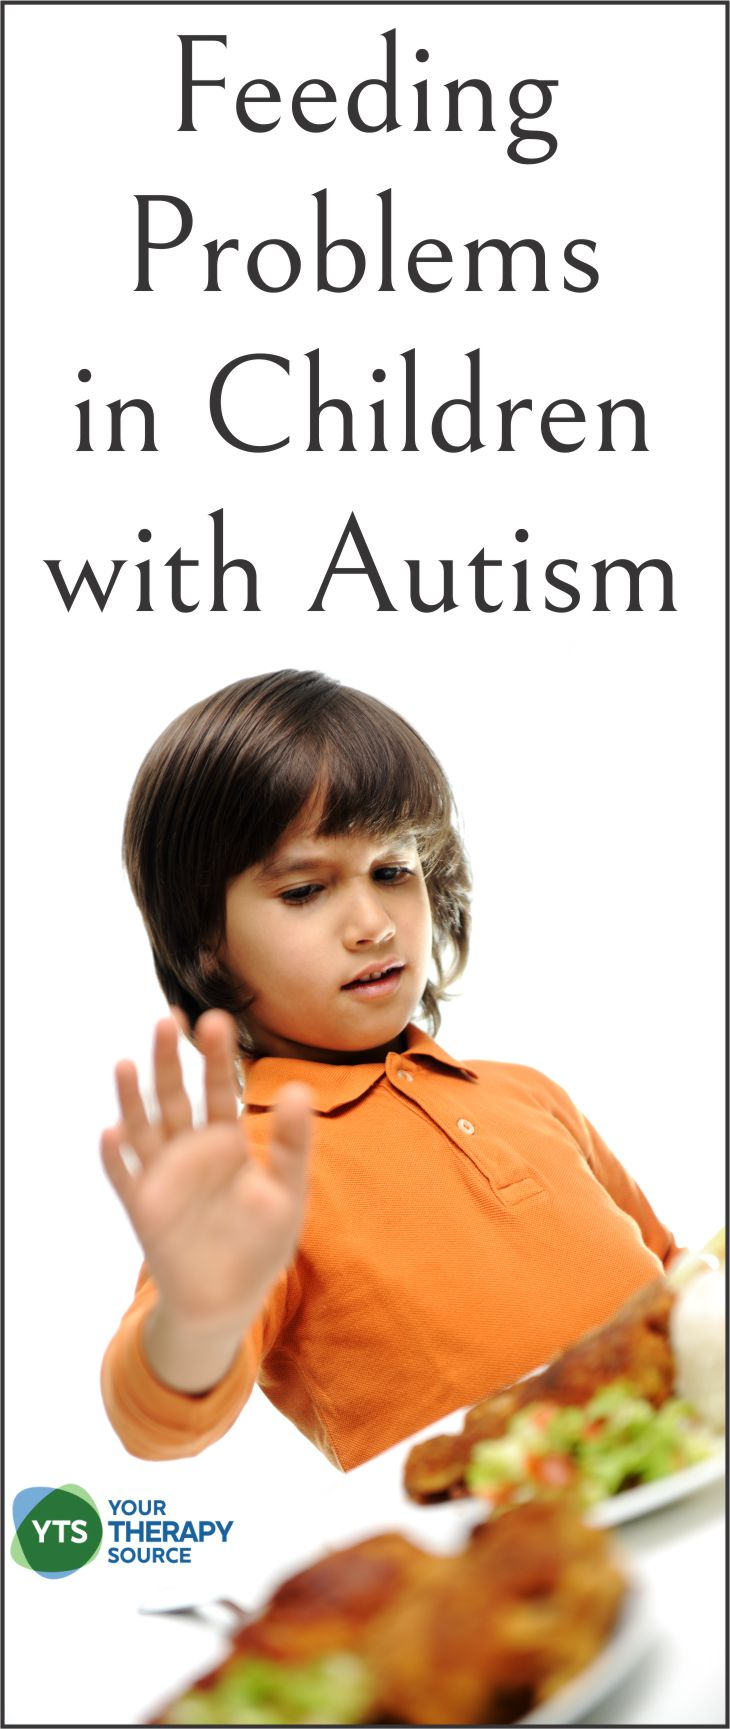 Researchers have determined that there is a higher prevalence of feeding problems in children with autism over three years of age. The researchhas consistentlyfound that more than 50% of children with ASD exhibit limited food acceptance. This can increase stress levels for families, in addition, to put children at risk for decreased intake of important minerals and vitamins.